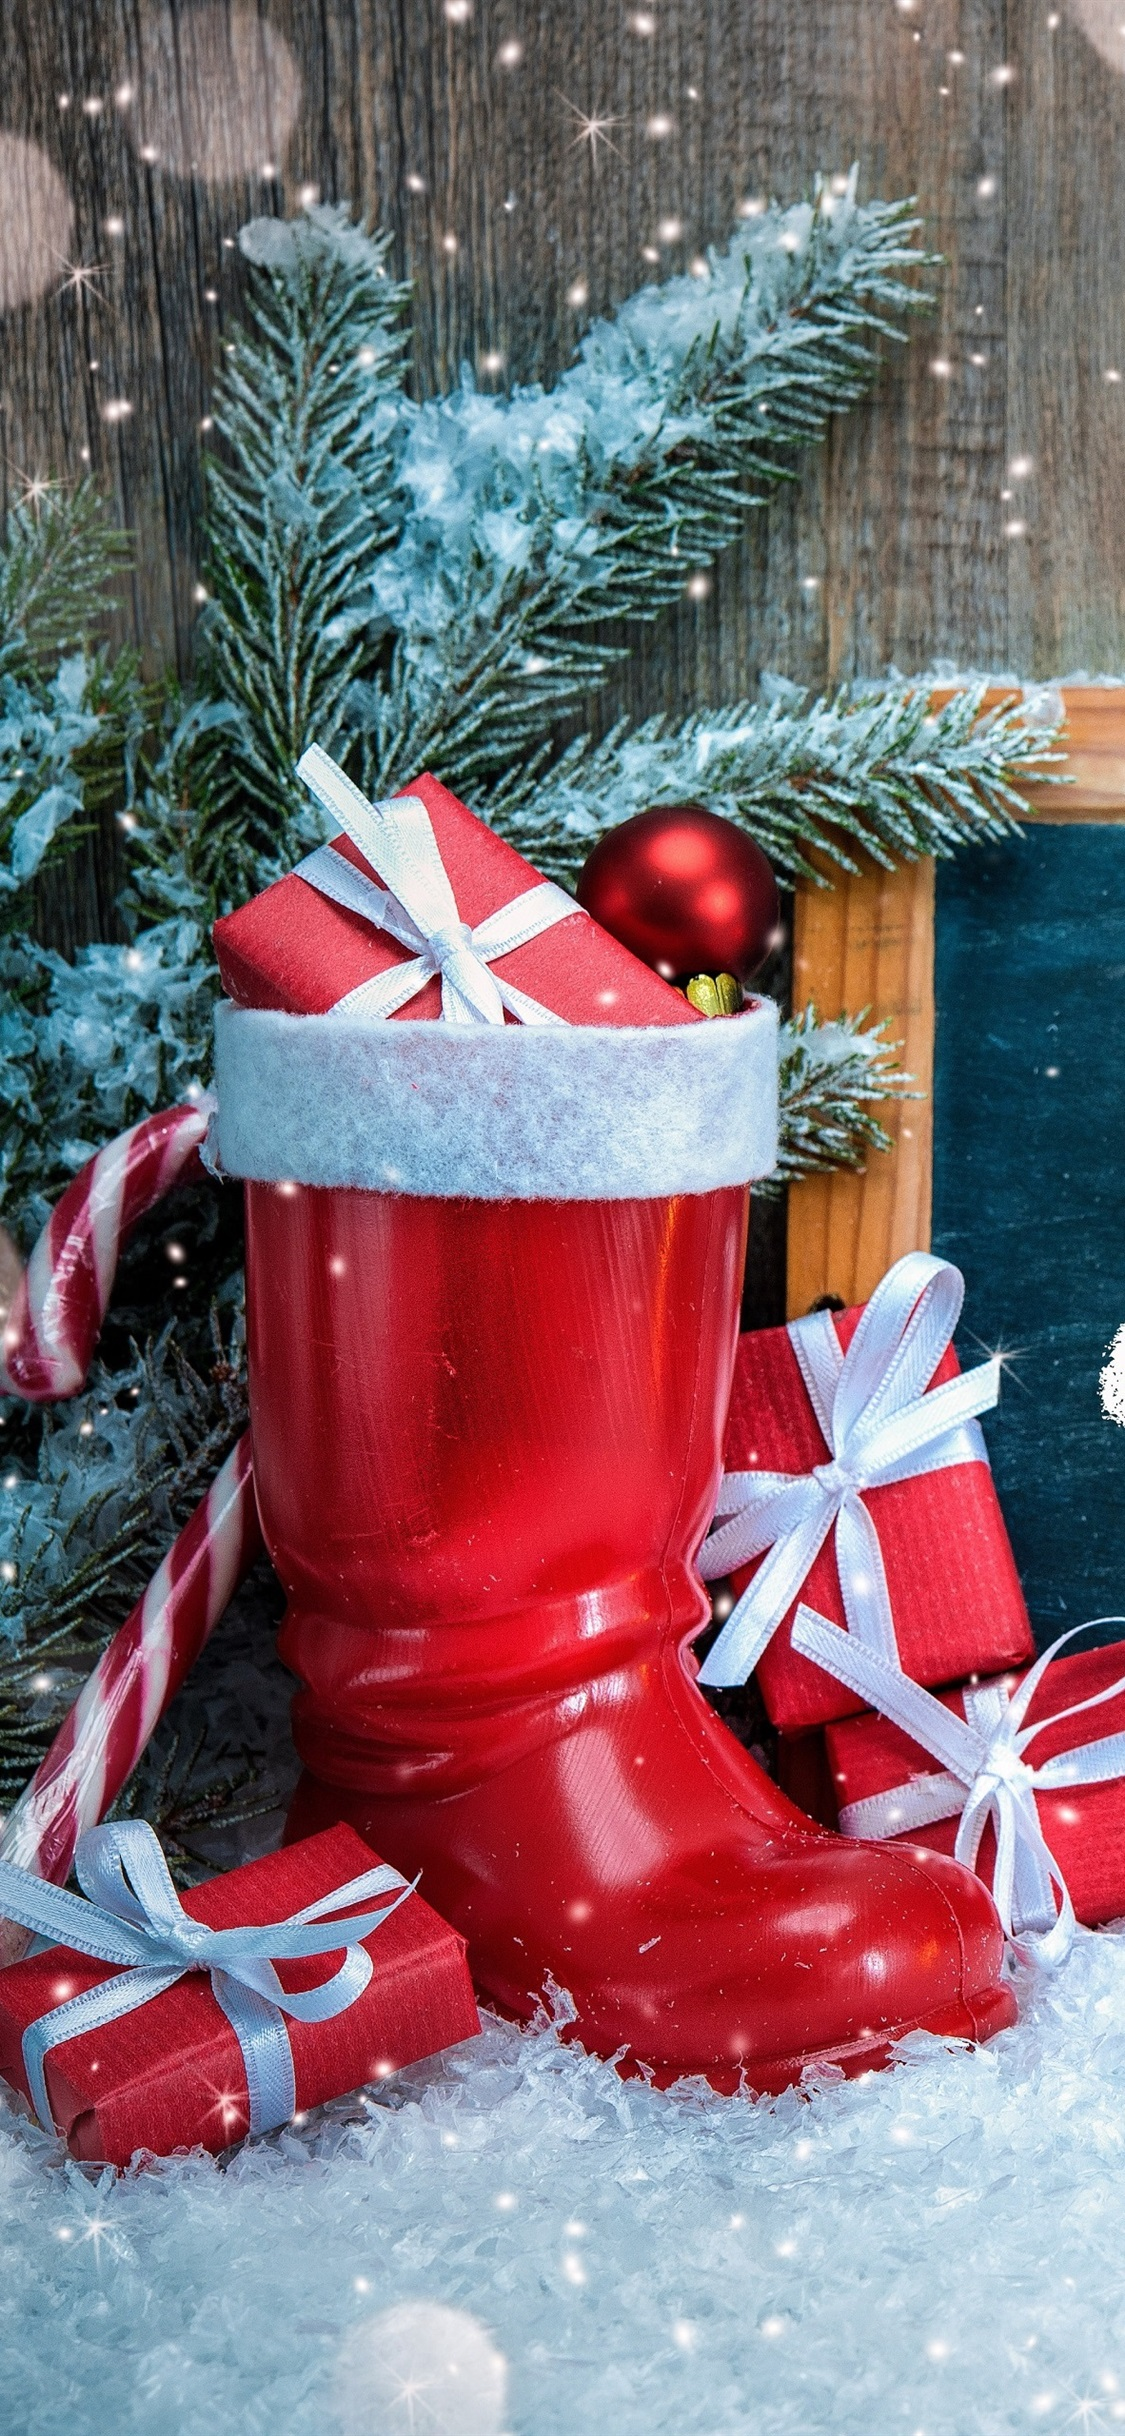 Merry Christmas Shoes Lamp Snow Gifts 1125x2436 Iphone 11 Pro Xs X Wallpaper Background Picture Image